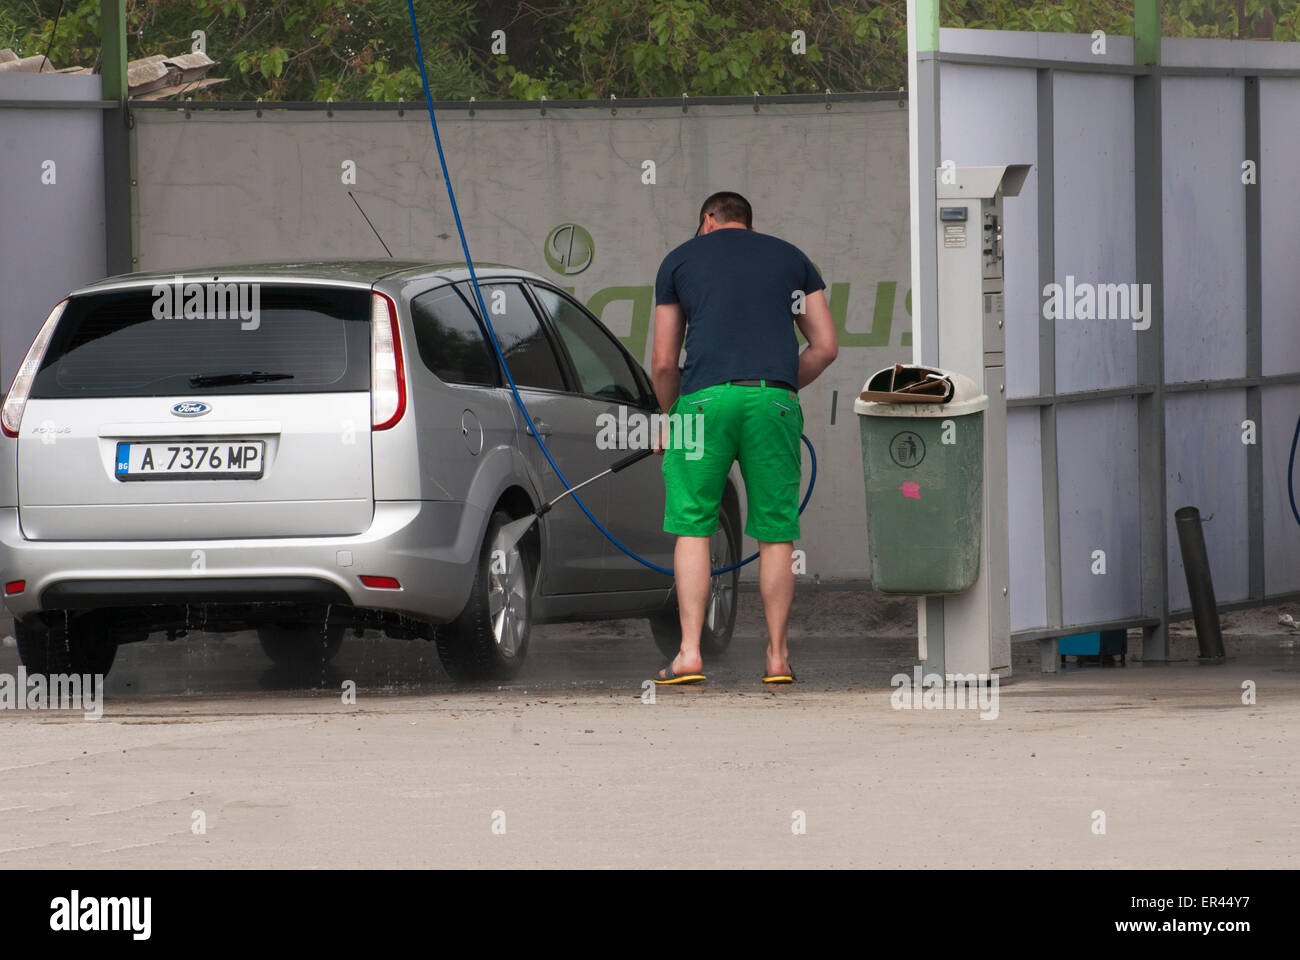 Wash station stock photos wash station stock images alamy a man washing his car at self service car wash station stock image solutioingenieria Image collections